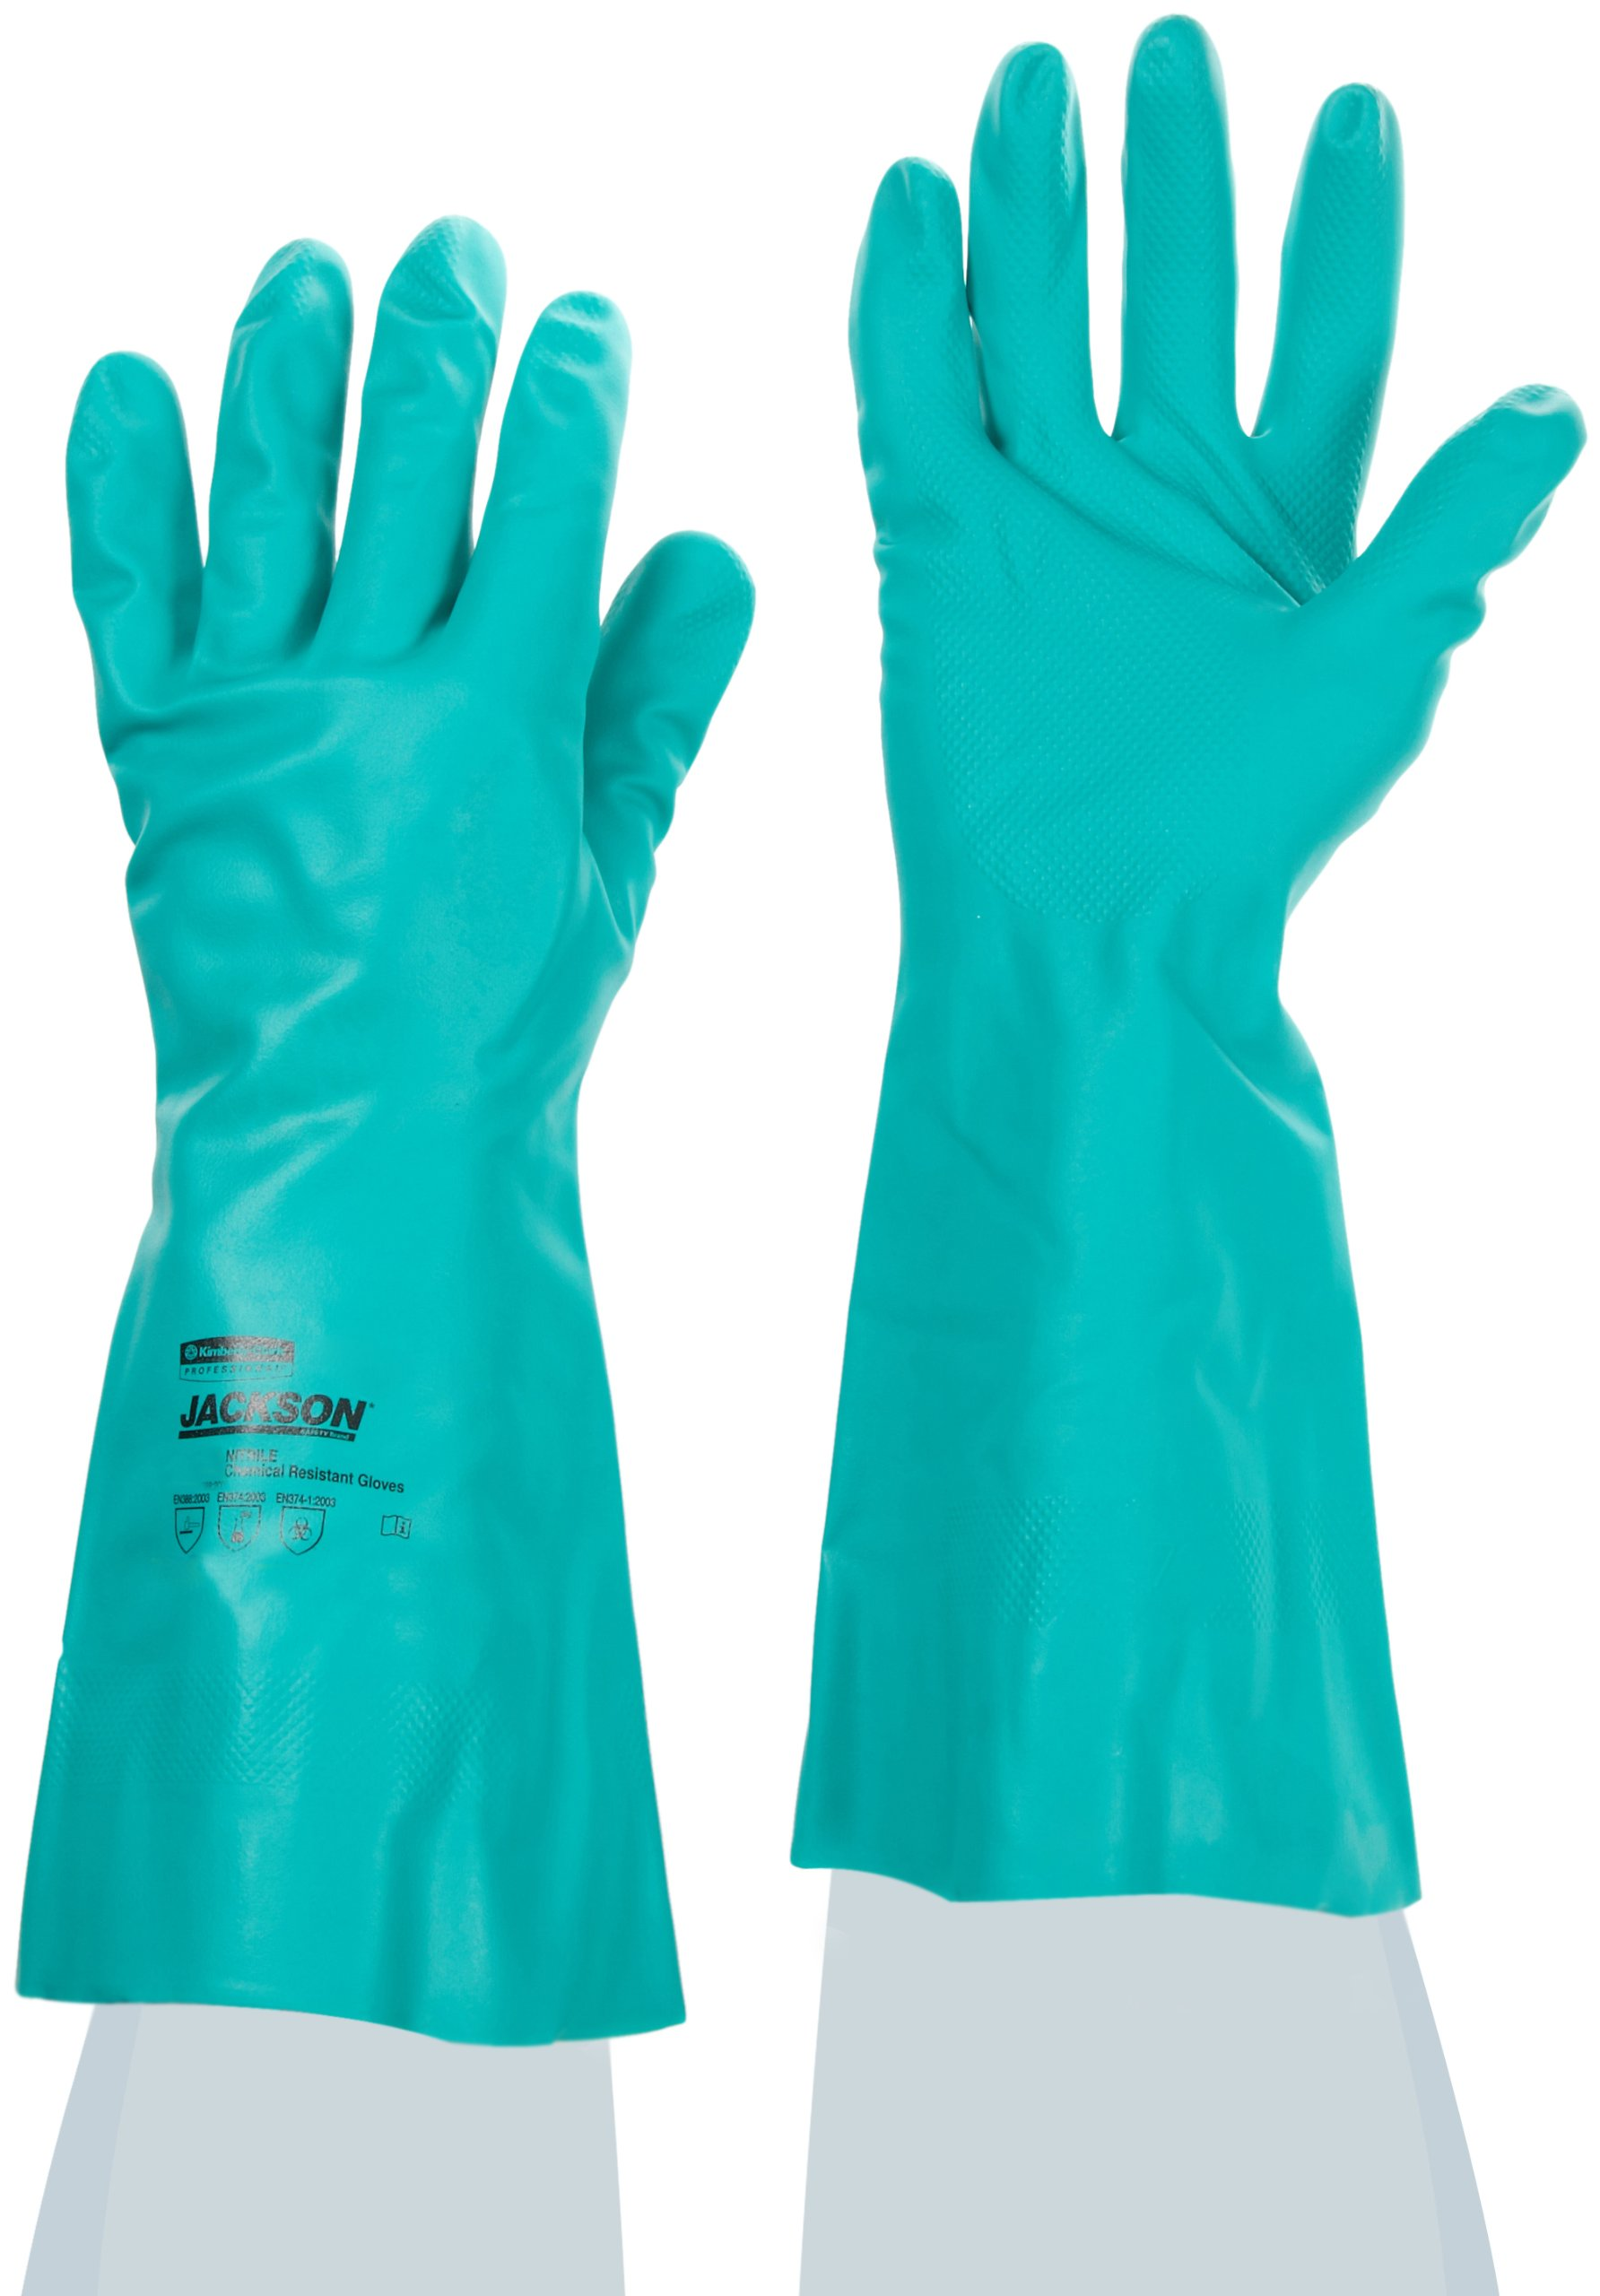 Jackson Safety G80 Nitrile Glove, Chemical Resistant, 15 mil Thickness, 13'' Length, Medium, Green (Case of 60 Pairs)